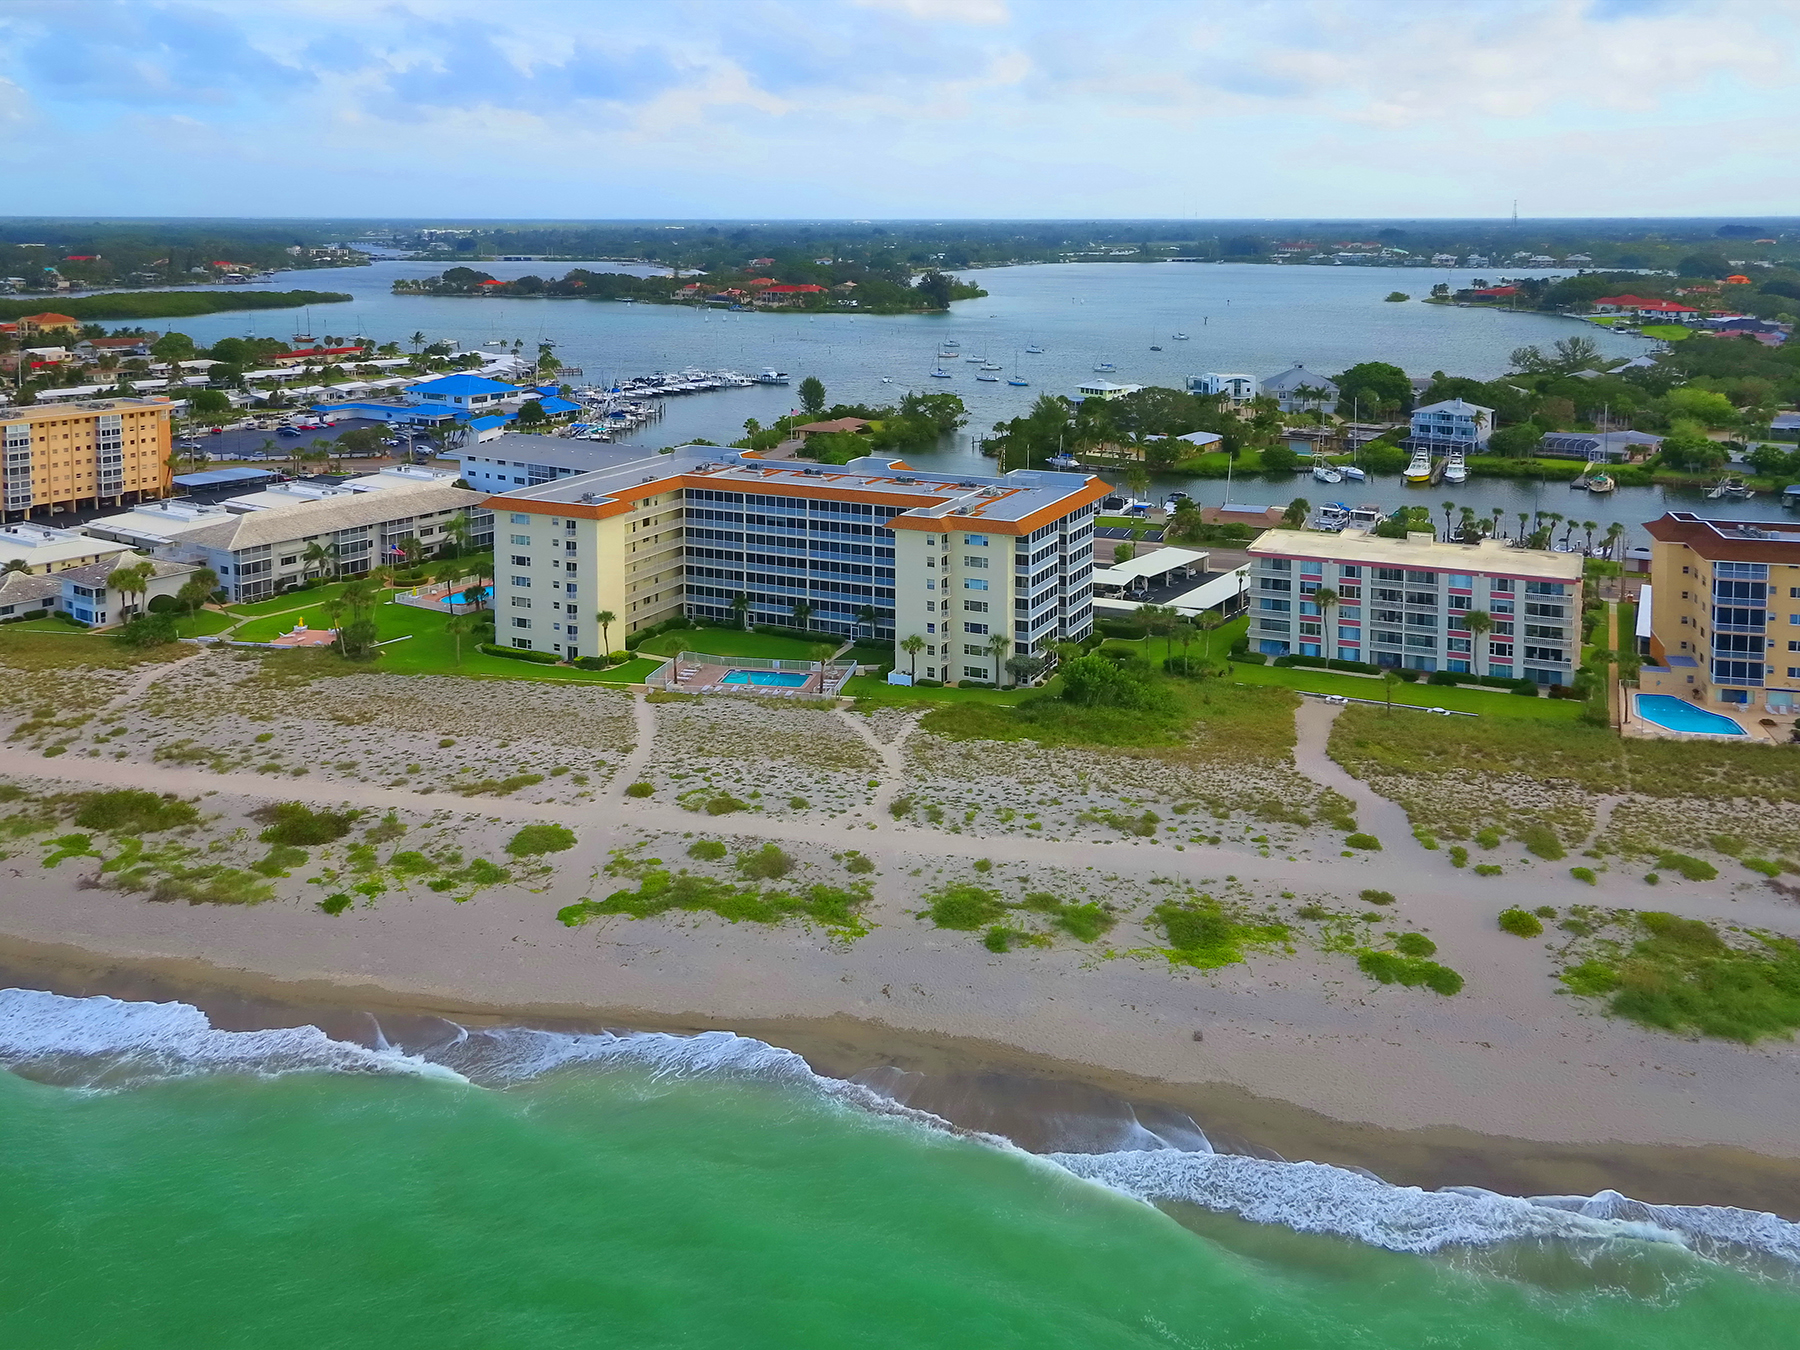 Condominium for Sale at VENICE ISLAND 1150 Tarpon Center Dr 502 (5-B) Venice, Florida, 34285 United States